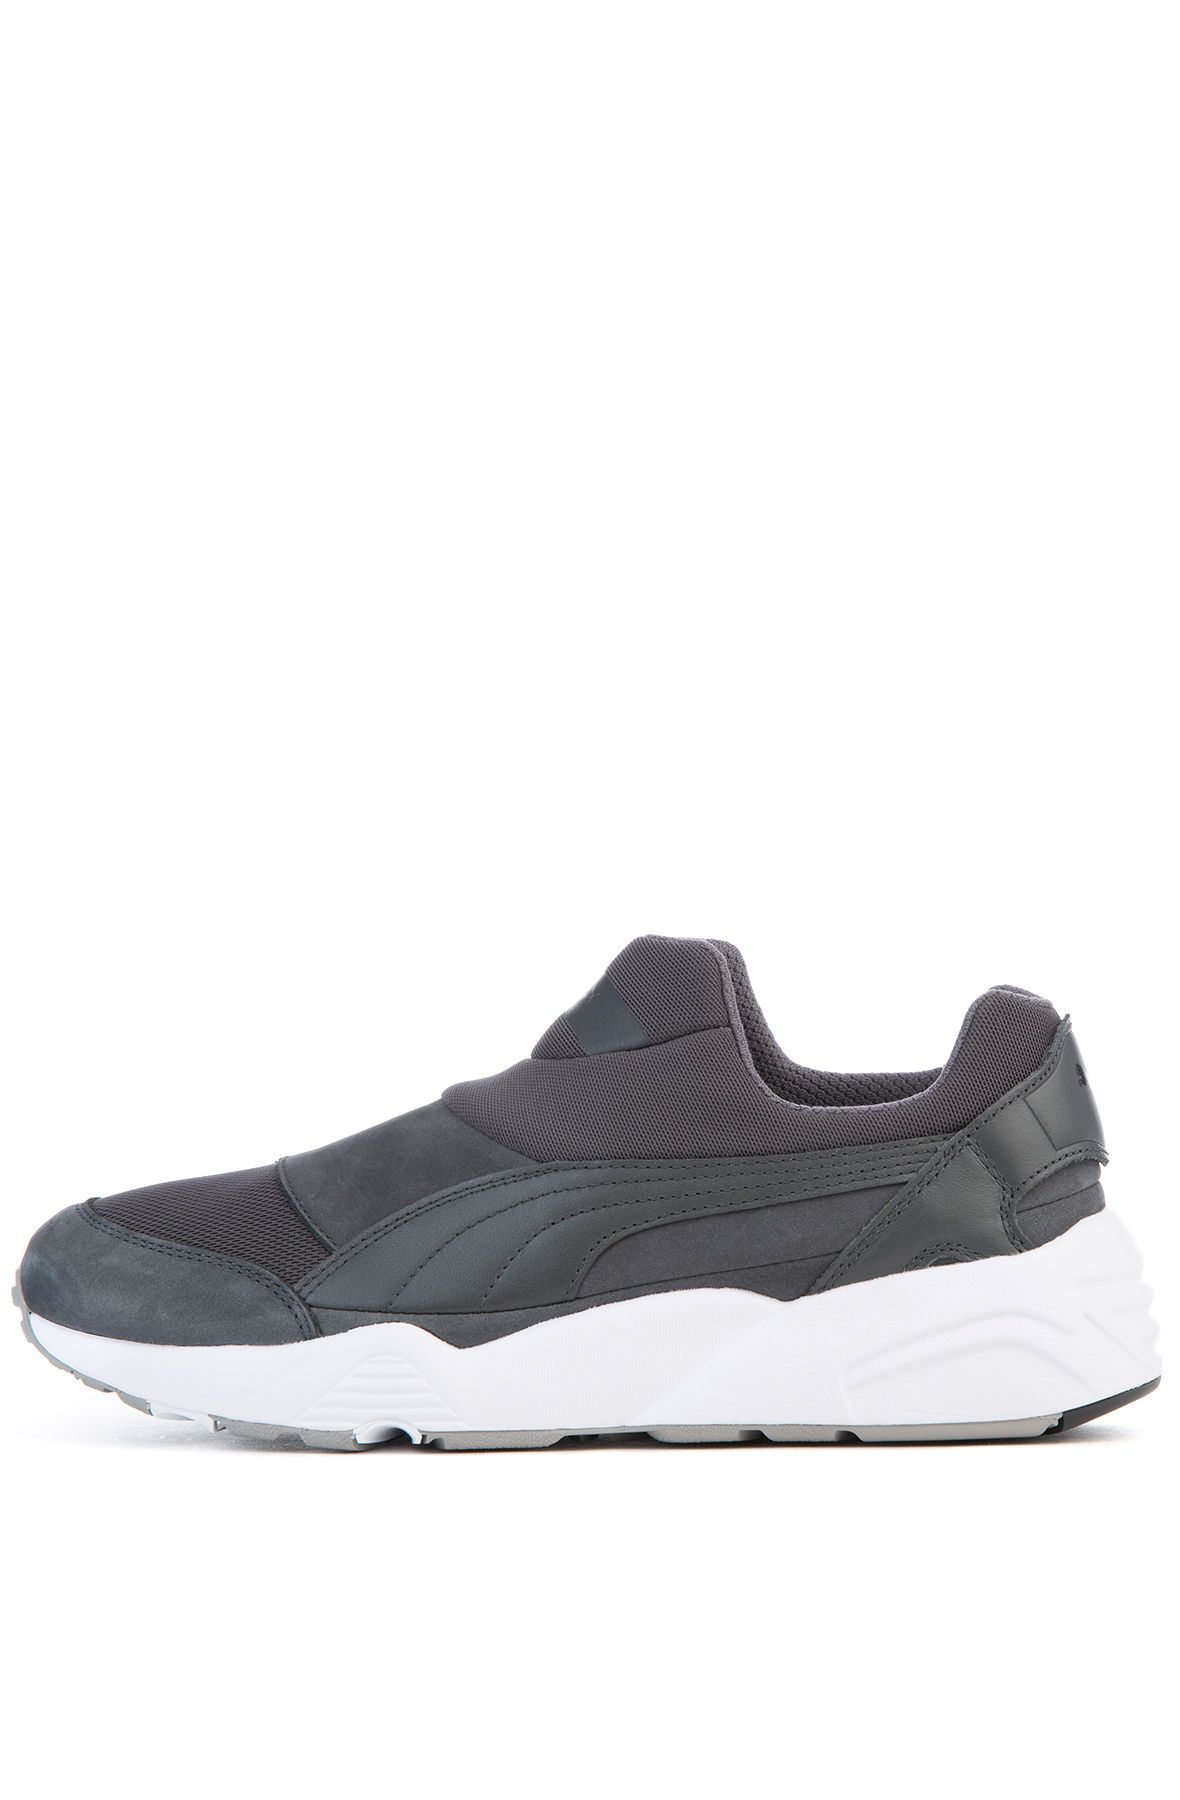 The Puma x Stampd Trinomic Sock NM Sneaker in Asphalt and White